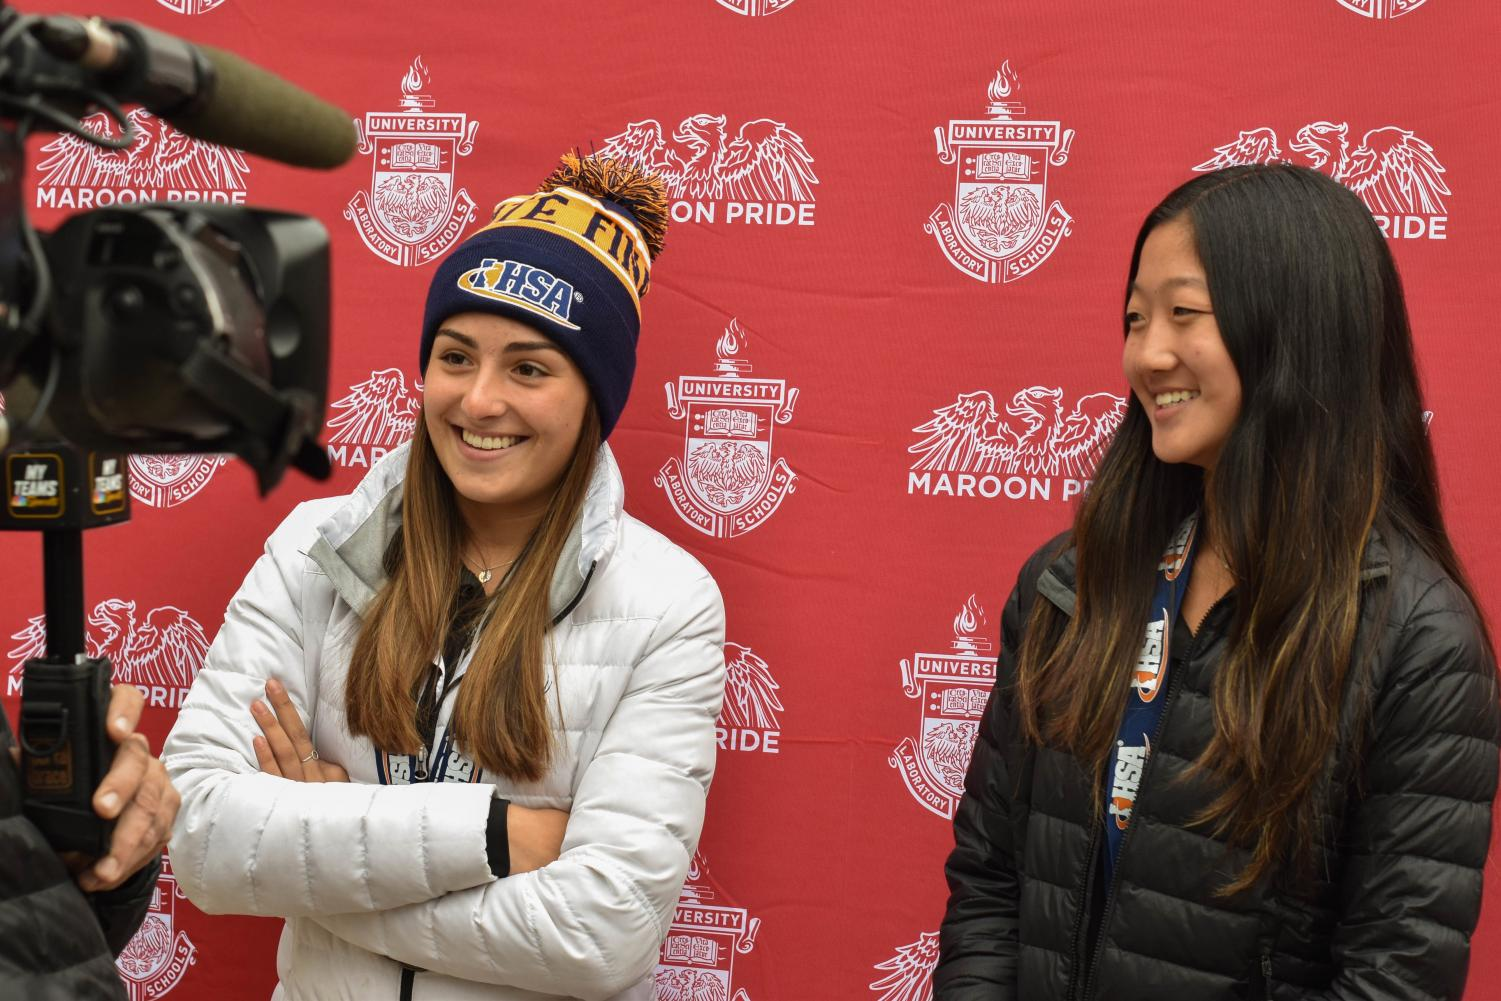 Team members Izzy Kellermeier and Emilee Pak give an interview to NBC Chicago about the state championship. the interview will broadcast Nov. 1.